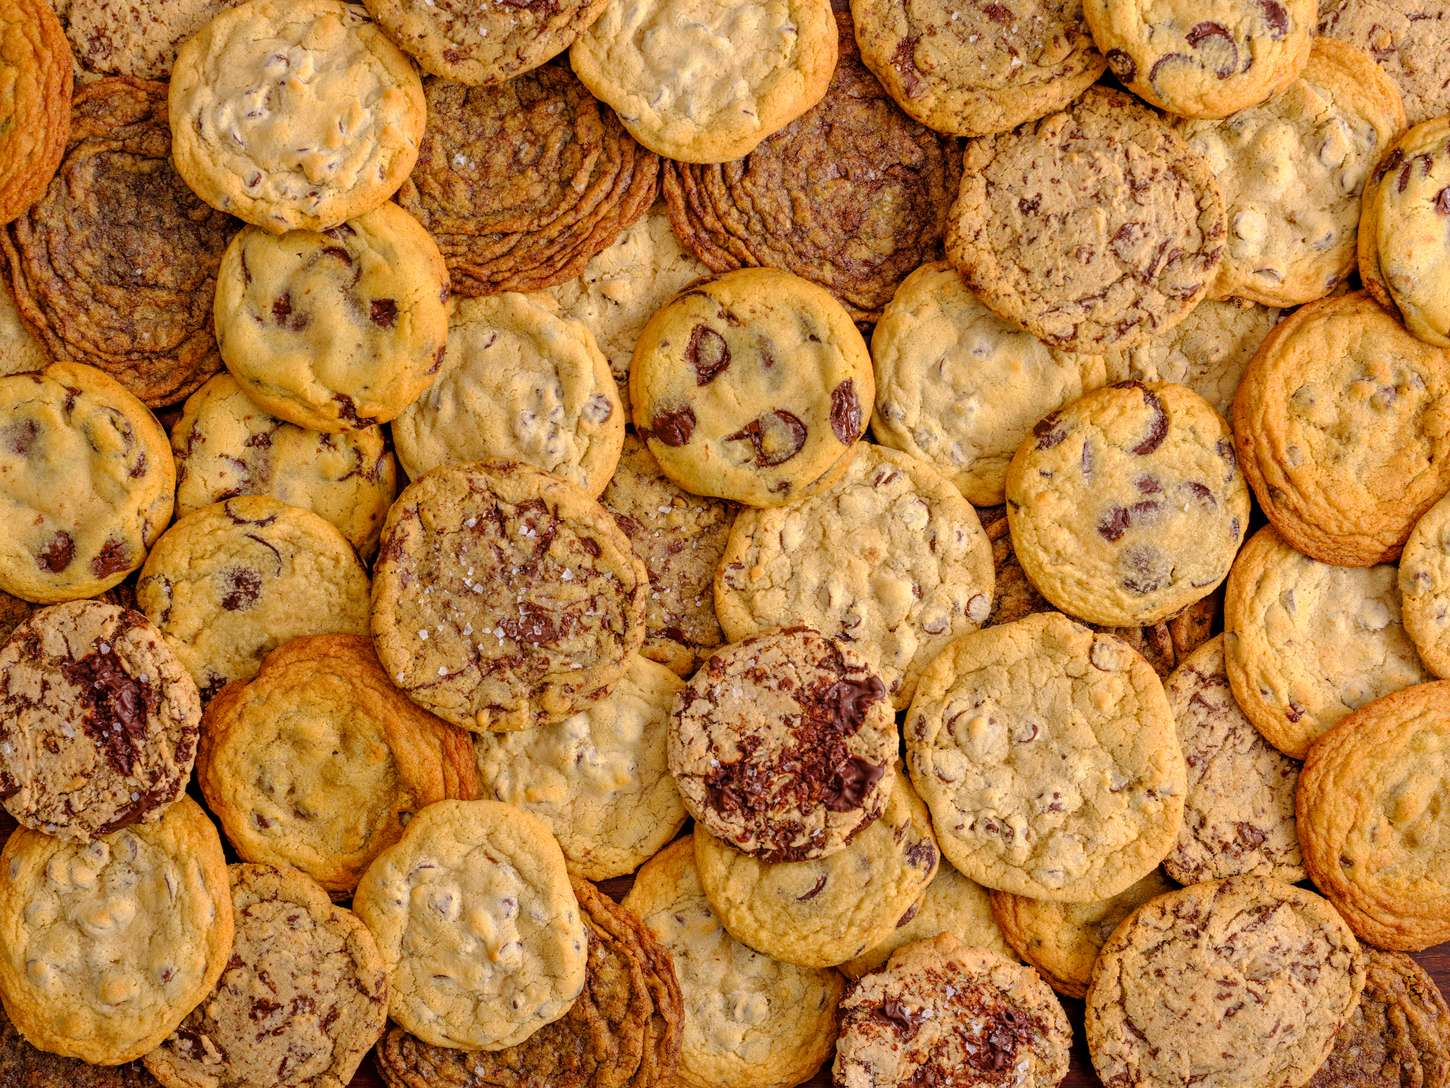 The Ultimate Guide To Chocolate Chip Cookies The 10 Best Recipes Chefsteps